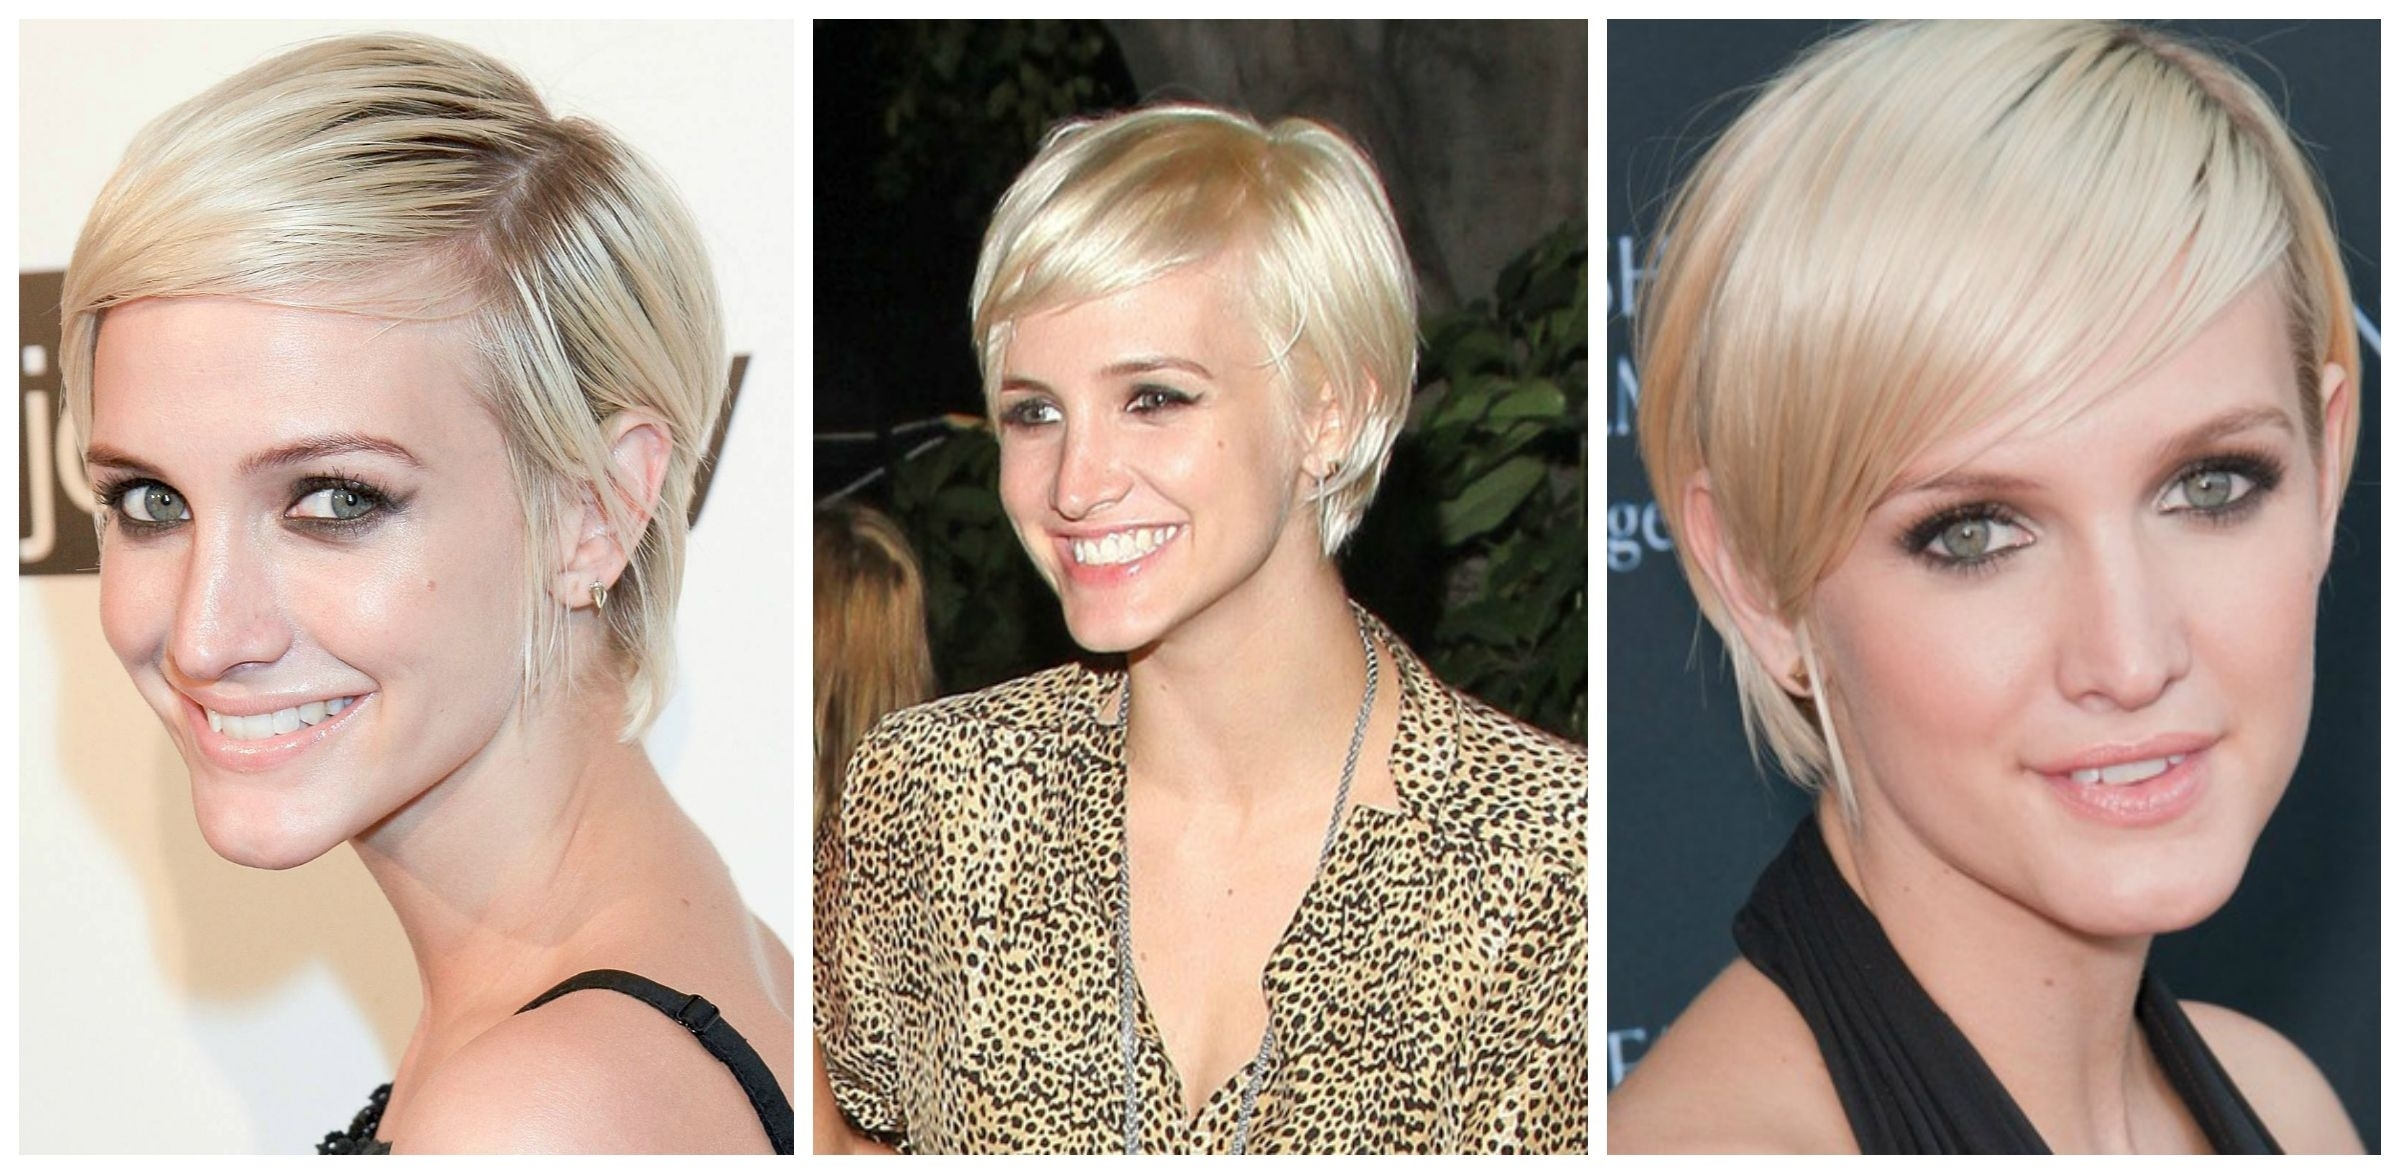 Image Result For Short Hair Behind Ears | Wedding Hair within Bob Cut With Hair Behind Ears